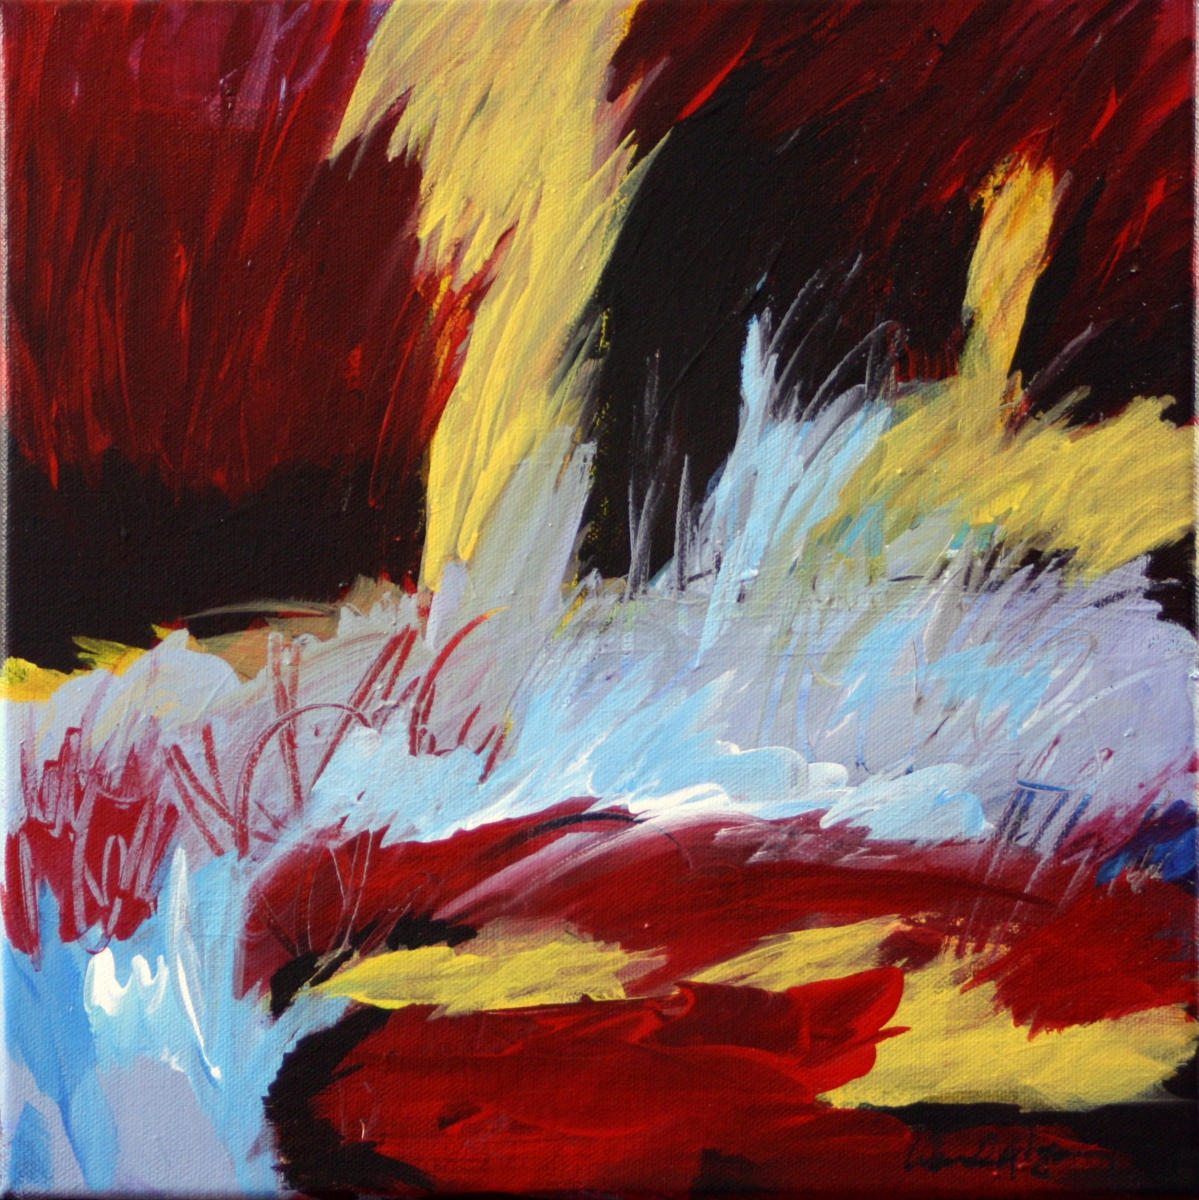 colorful energetic abstract landscape painting in blue, red and gold (large view)